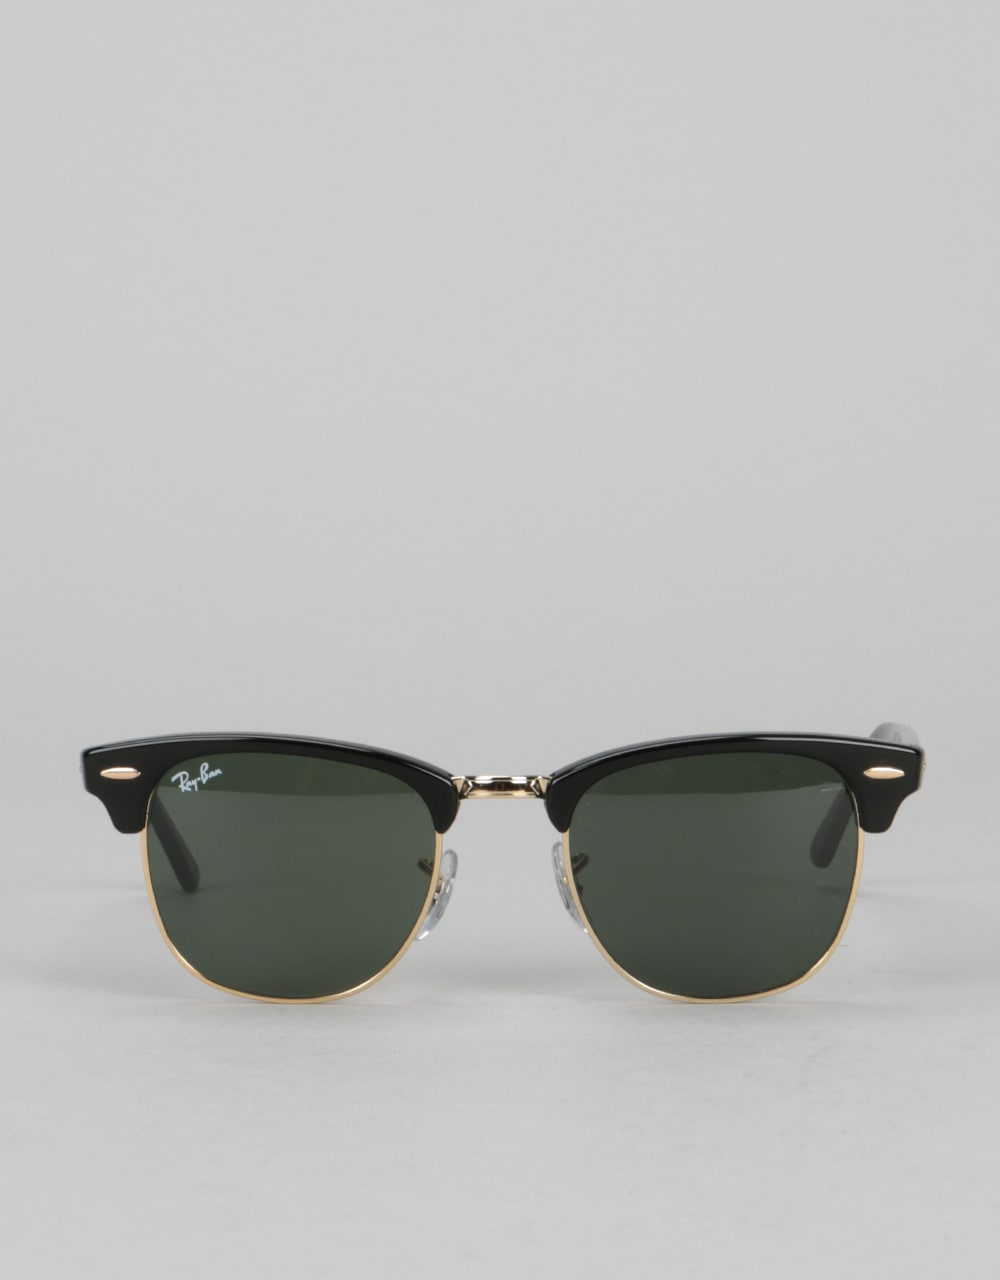 a51a24d12e Ray-Ban Clubmaster - Black Green Classic G-15 Lens RB3016 W0365 ...